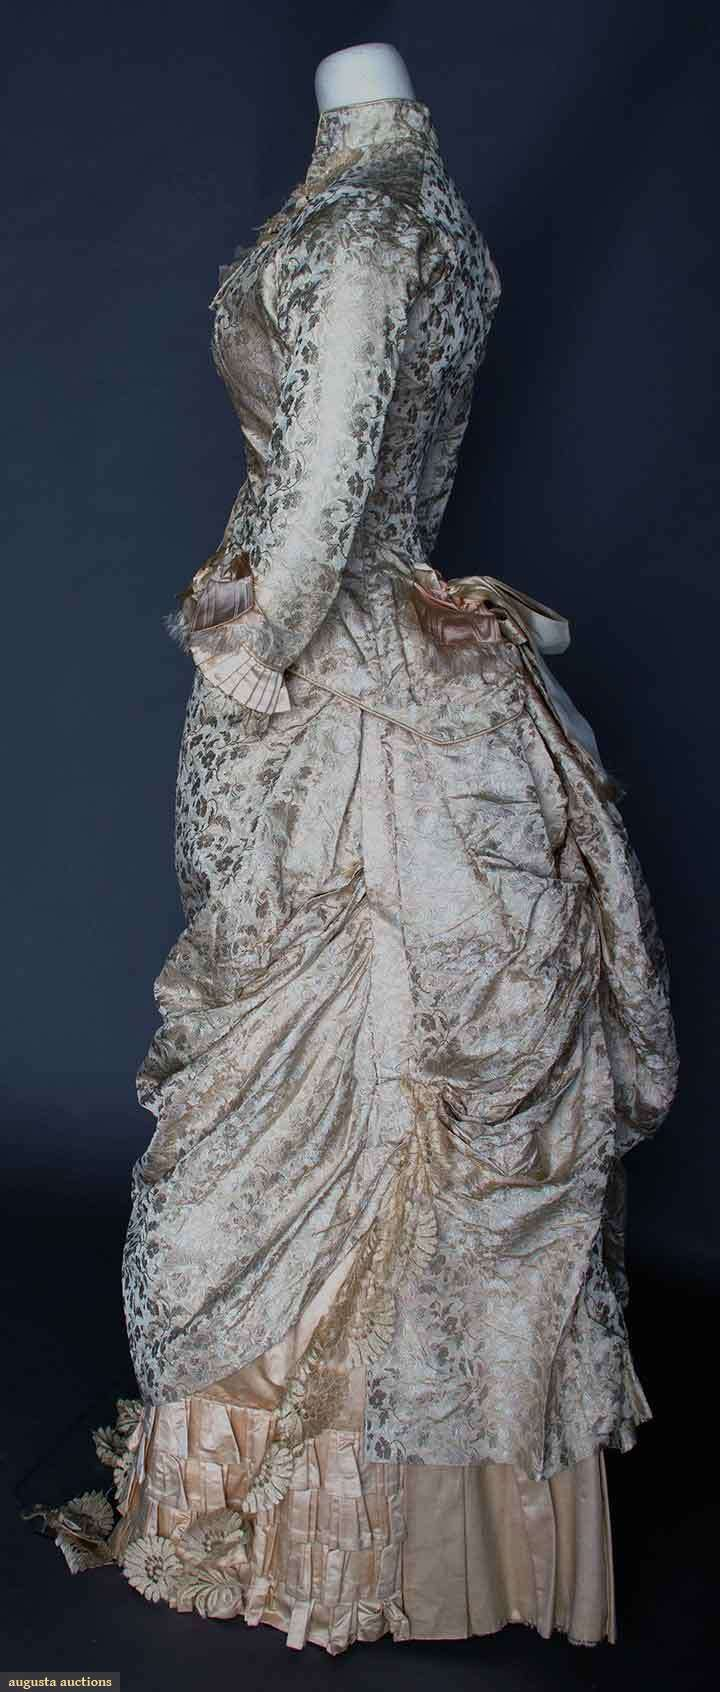 Silk Brocade Wedding Dress, 1880, via Augusta Auctions, April 9, 2014 - NYC.